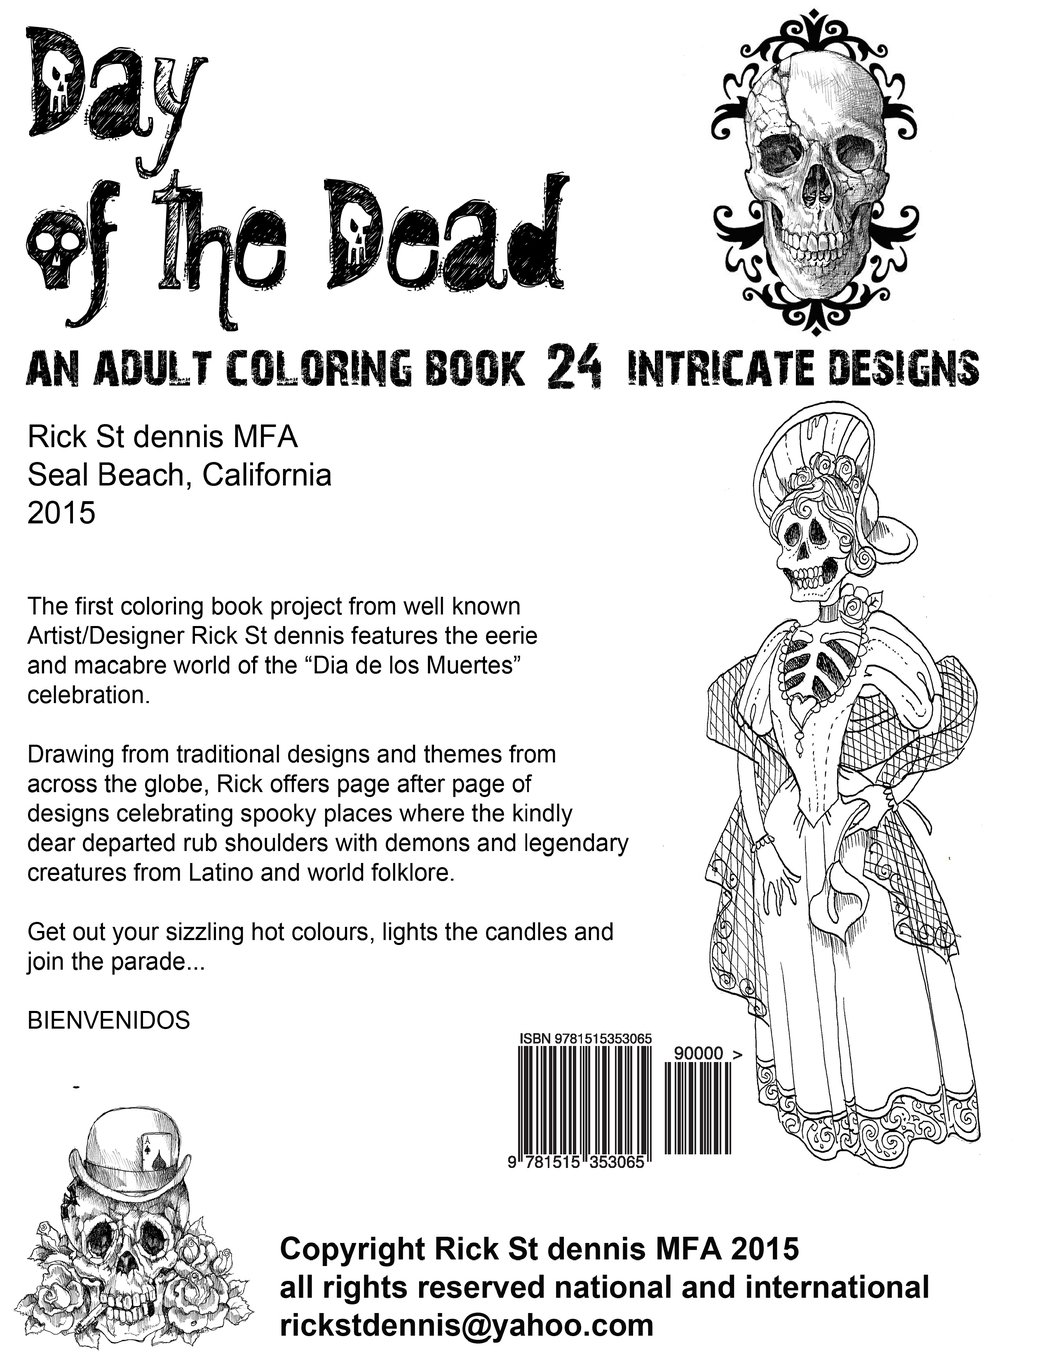 monique dia de los muertos coloring book by rick st dennis